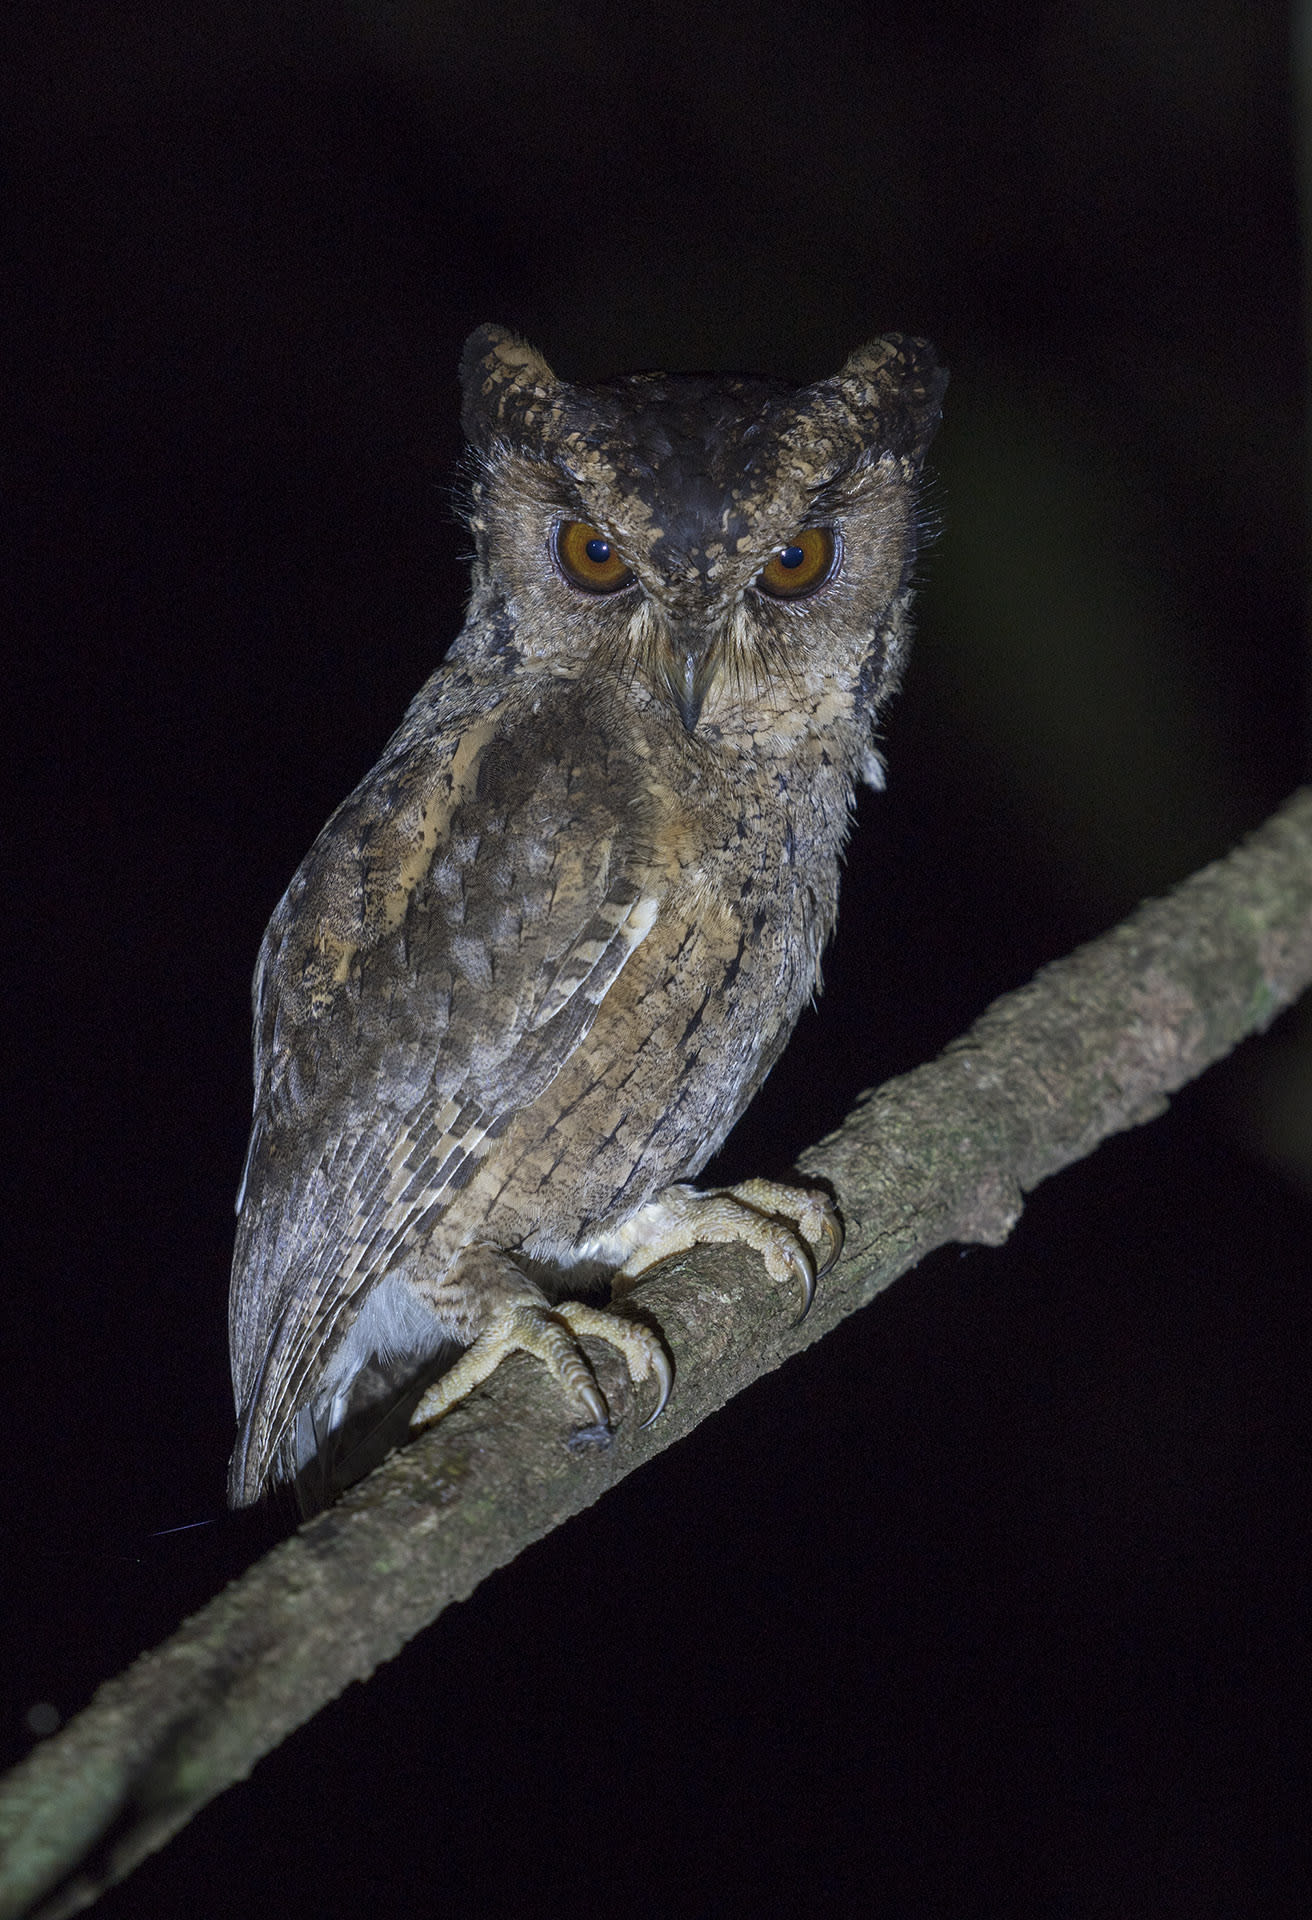 """Scops owls are small birds that are masters of camouflage. Their colouring, of brown, black, or grey tinged feathers, tends to vary with the area they inhabit. They blend easily into the bark of trees, dark hollows, and tree cavities, where they like to roost. The bodies of both the collared scops owl (Otus lettia) (top) and the Indian scops owl (Otus bakkamoena) (above) closely resemble a tree trunk. """"Collared and Indian scops owls look and even sound similar to each other, but the collared scops owl is found in the Himalayas and the Northeast, while the Indian scops owl is distributed across peninsular India,"""" says Dalvi."""